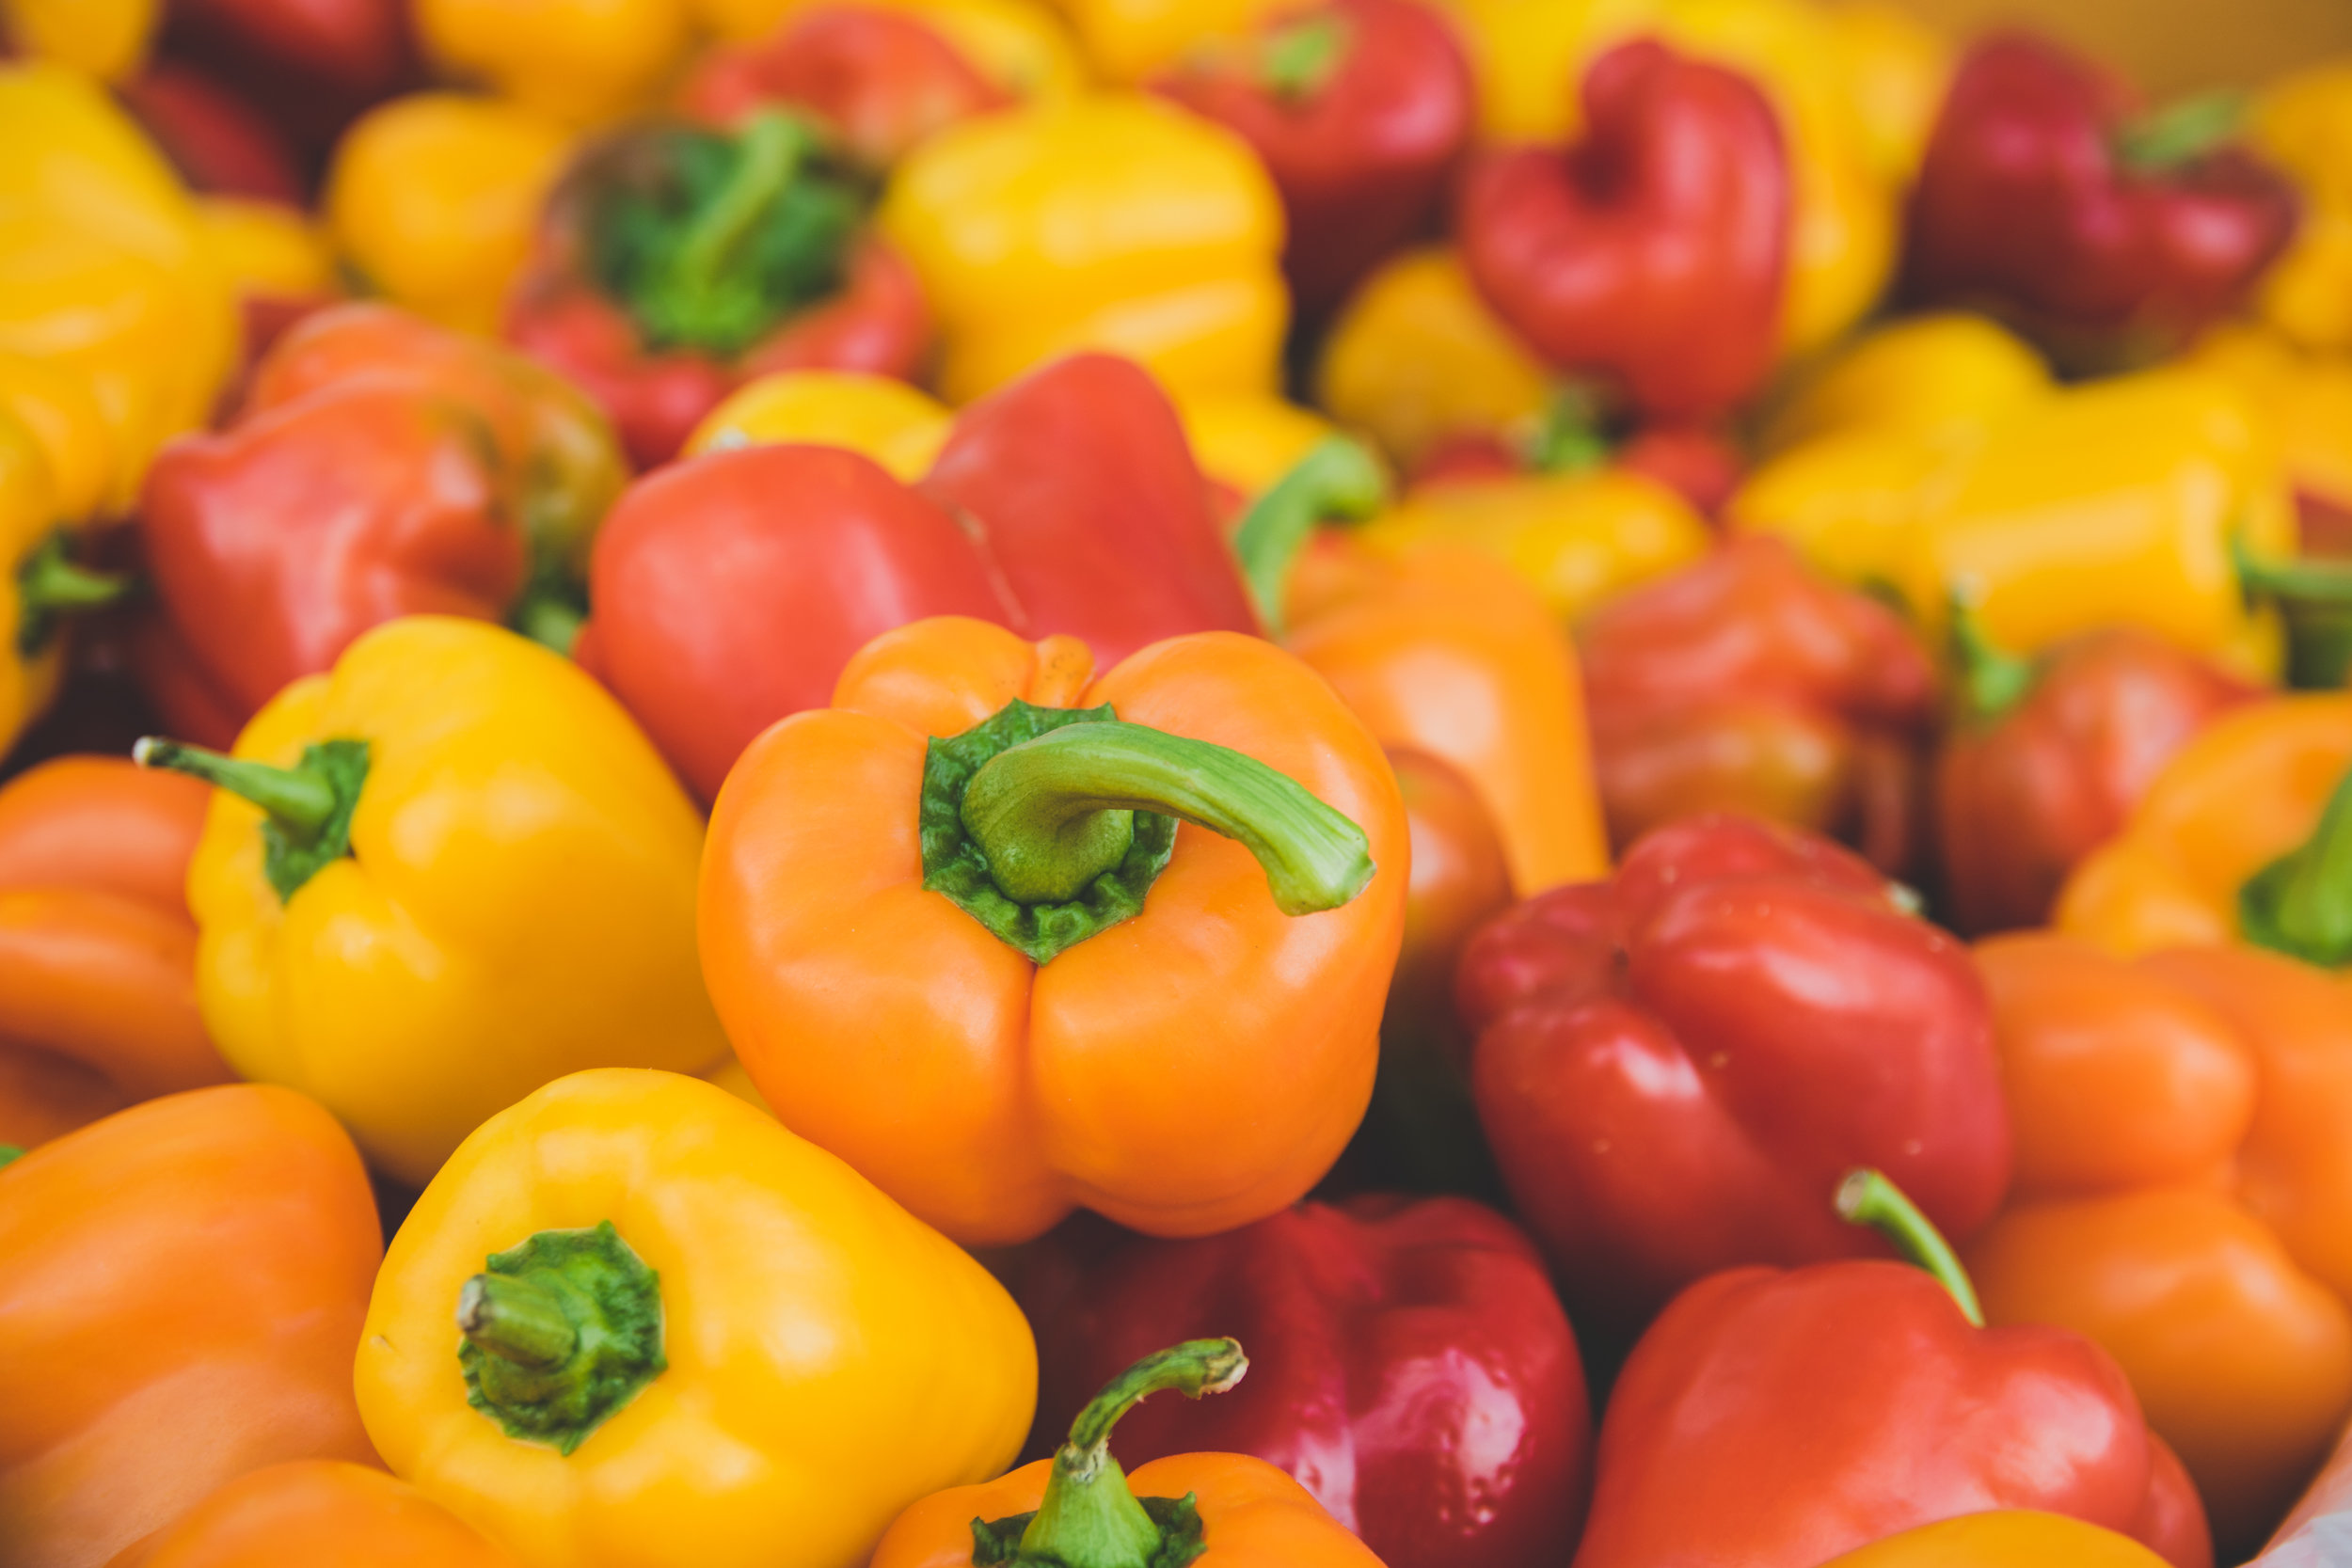 Peppers - Peppers are high in Vitamin C and carotenoids. Carotenoids help promote eye health. They contain more than double daily vitamin C intake, are a powerful antioxidant, and are a great source of folate a Vitamin B6 and folate. Specifically, red peppers are one of the highest veggies with the antioxidant lycopene and are considered a superfood.